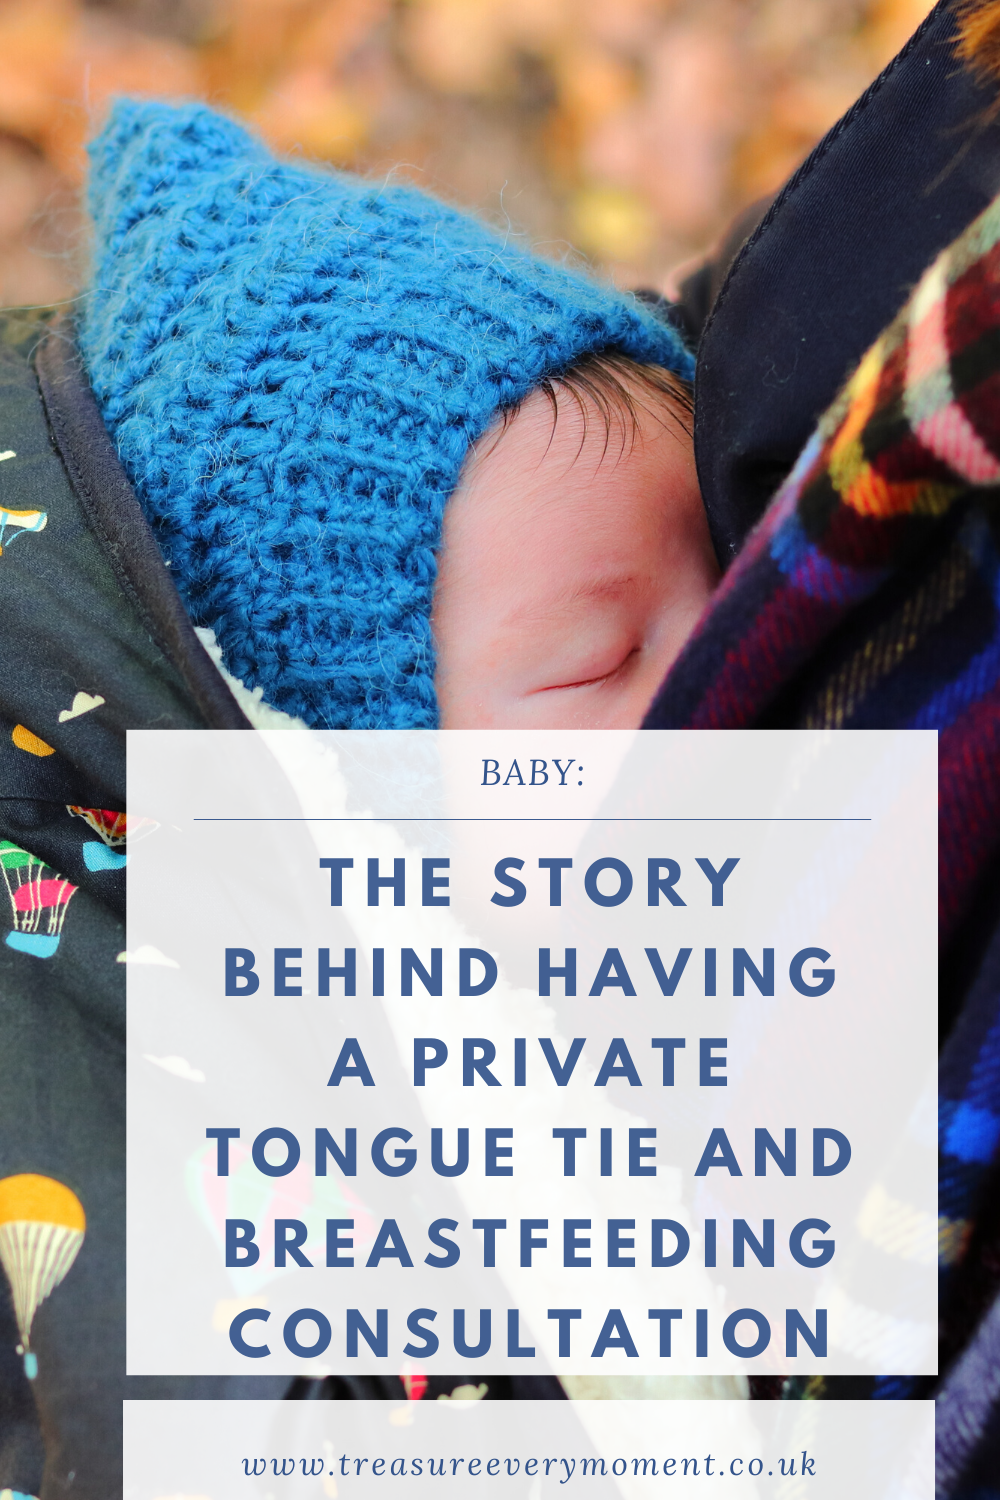 BABY: The Story behind having a Private Tongue Tie and Breastfeeding Consultation